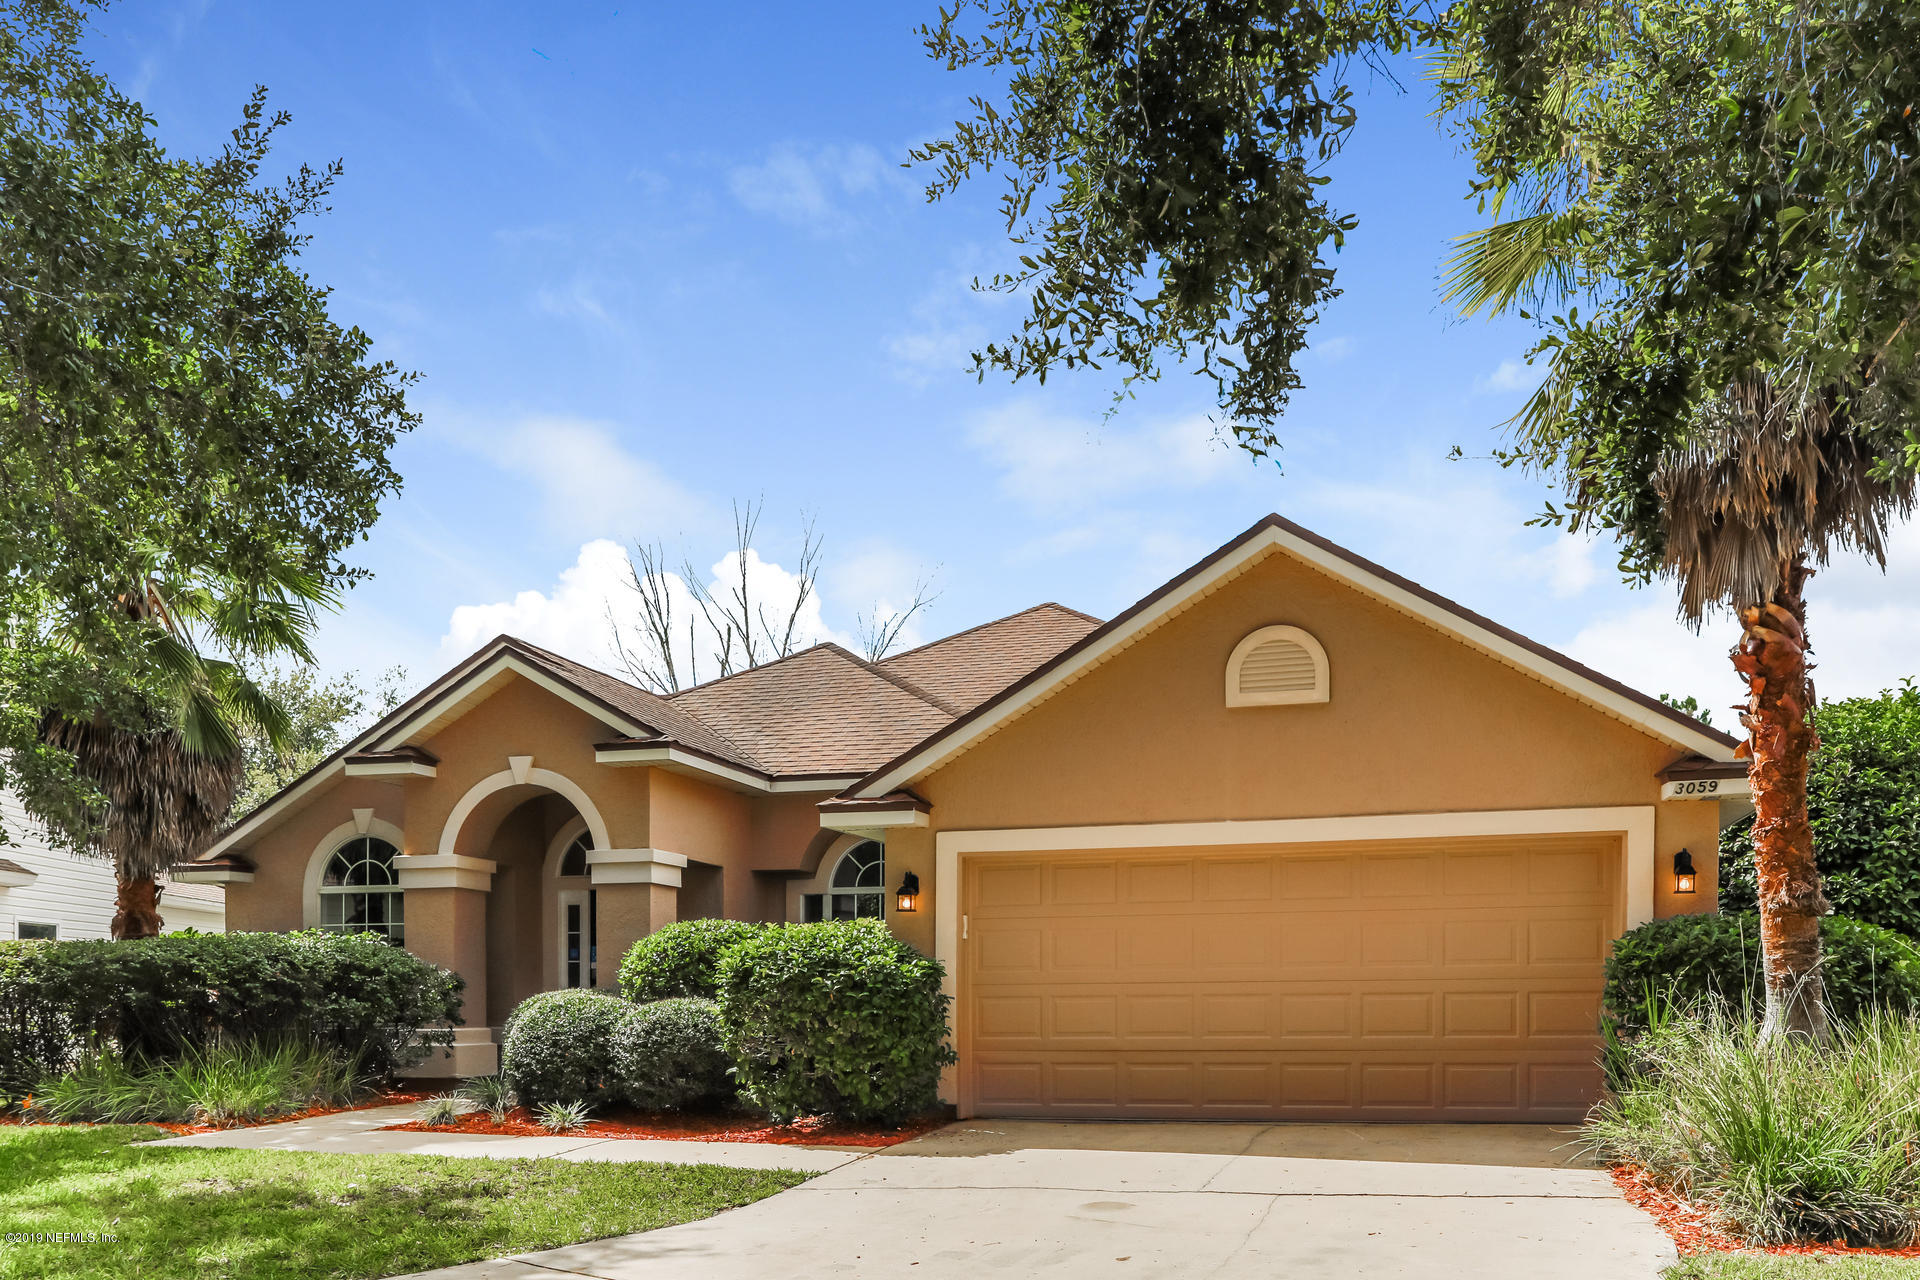 3059 STONEWOOD, ORANGE PARK, FLORIDA 32065, 4 Bedrooms Bedrooms, ,2 BathroomsBathrooms,Residential - single family,For sale,STONEWOOD,1020411